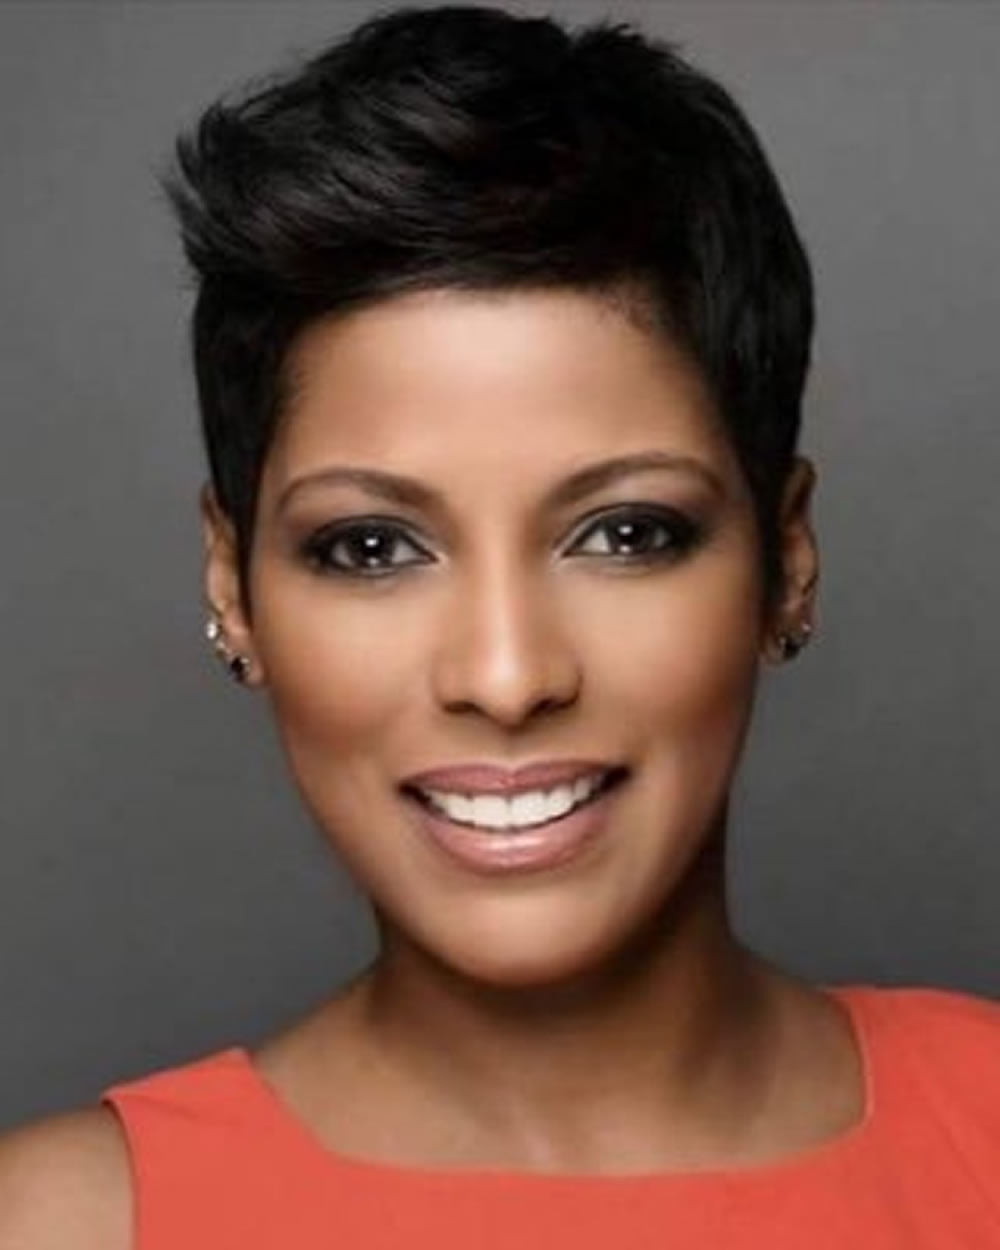 Short Pixie Black Hairstyles 2018 - Latest Haircut Ideas + Images ...